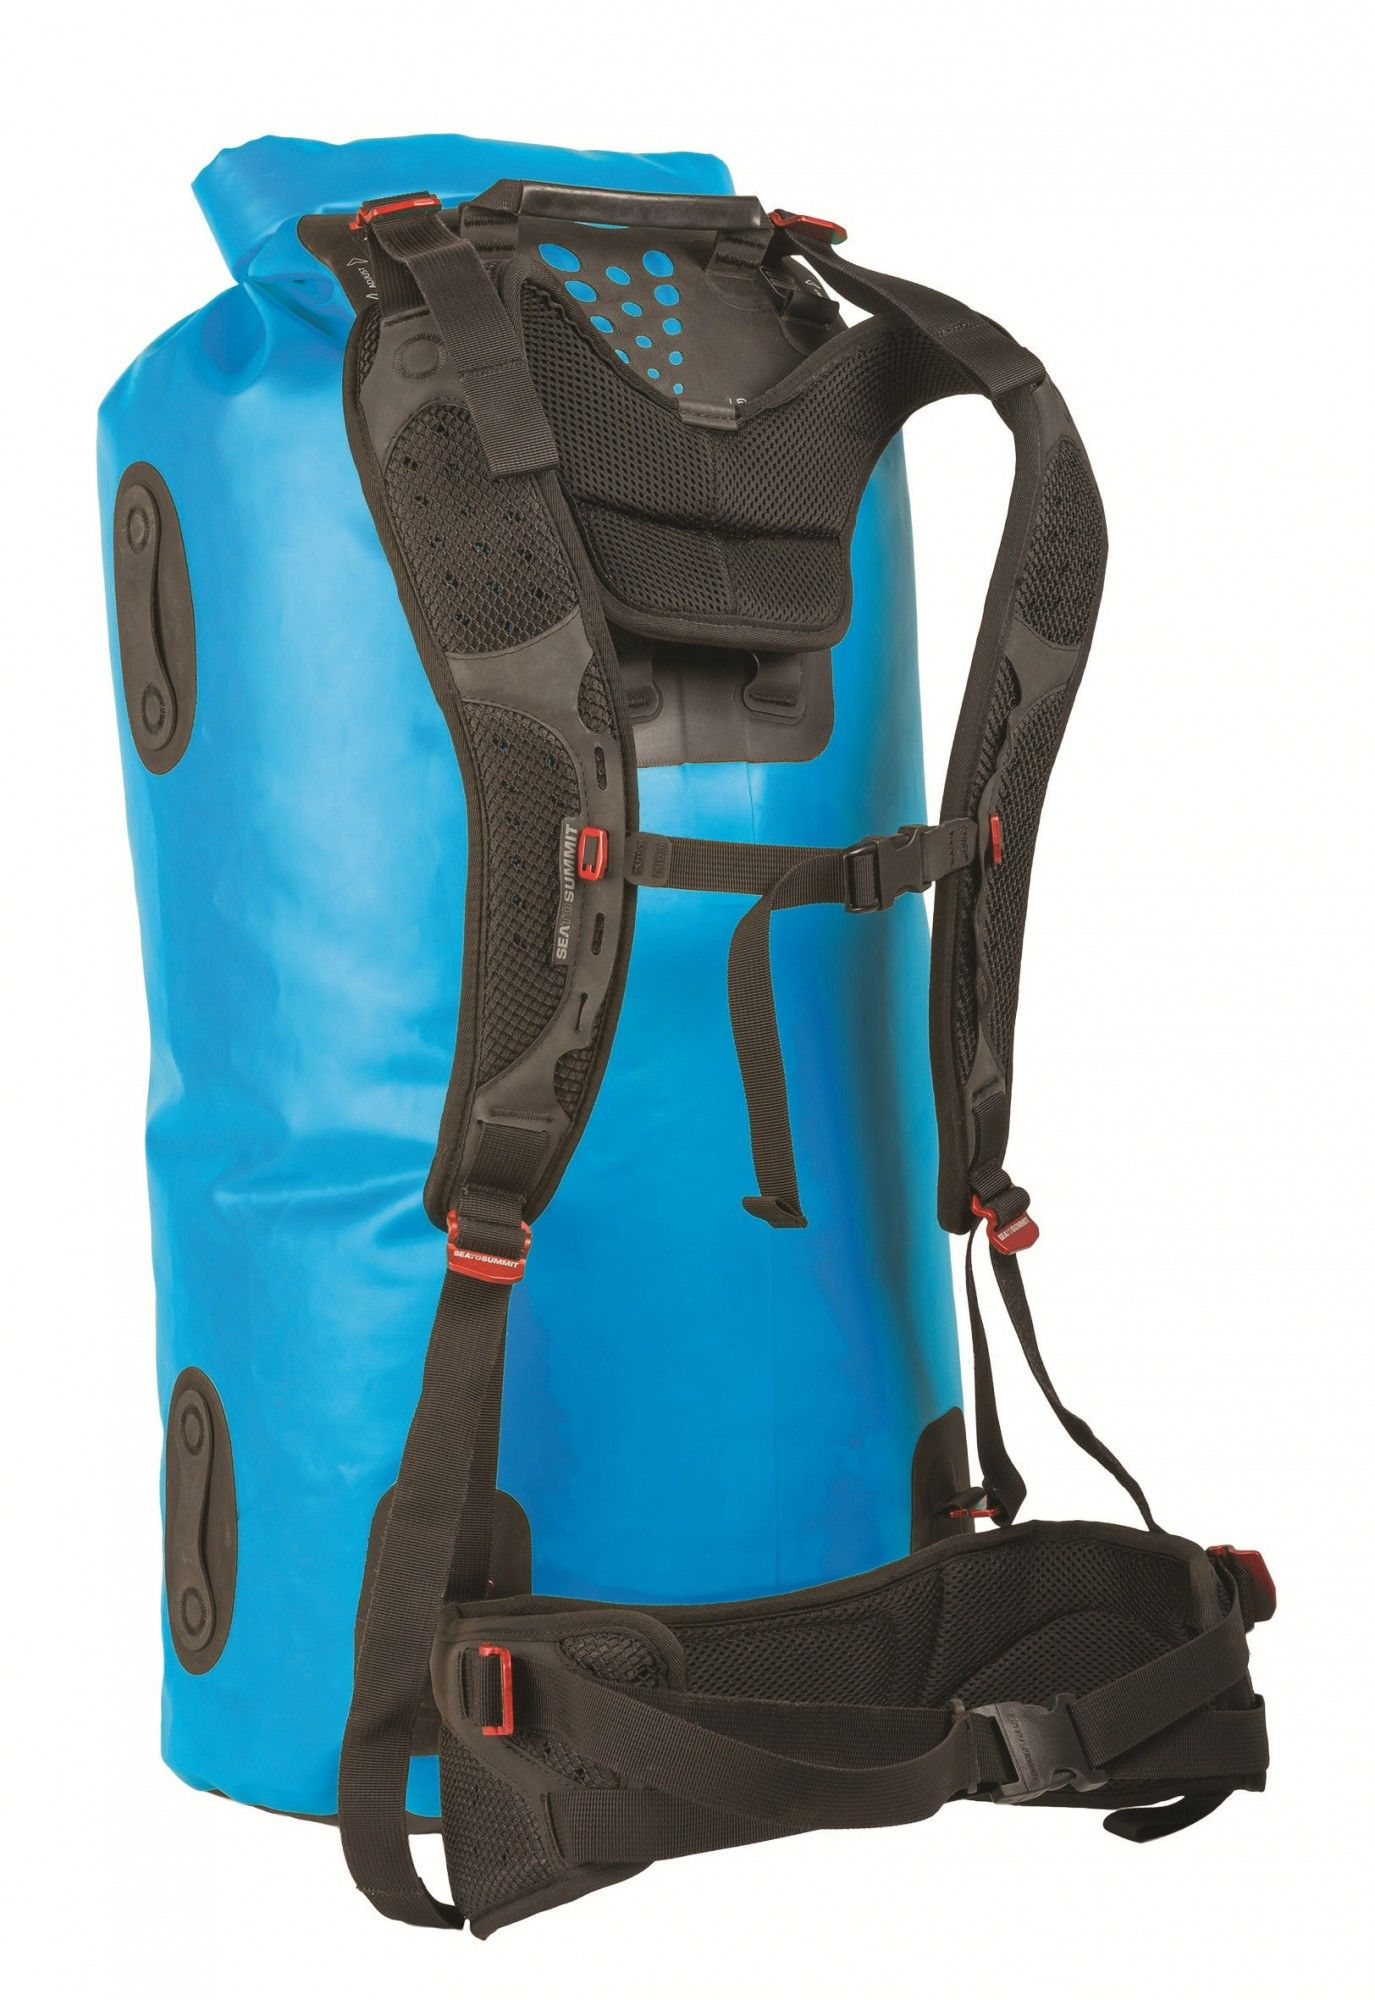 Sea to Summit Hydraulic Drypack 120l Blau, Taschen, 120l